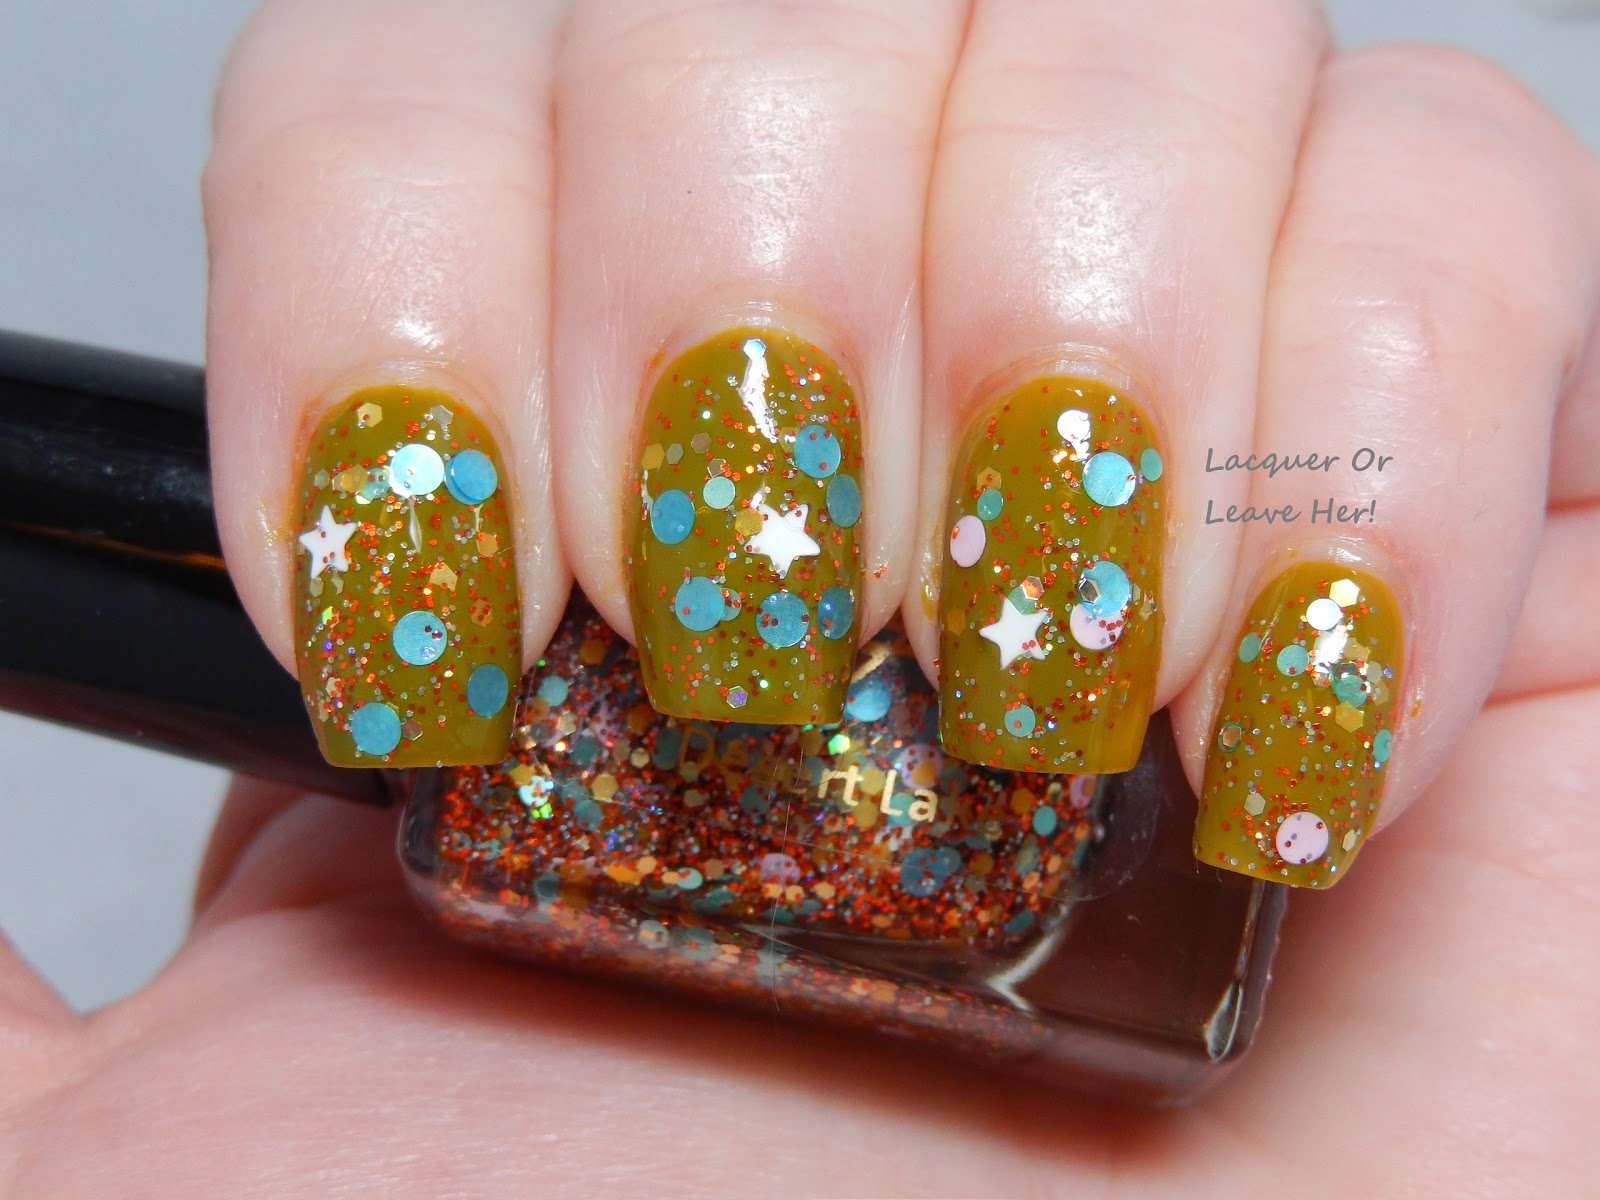 Nayll Desert Lake over China Glaze Budding Romance